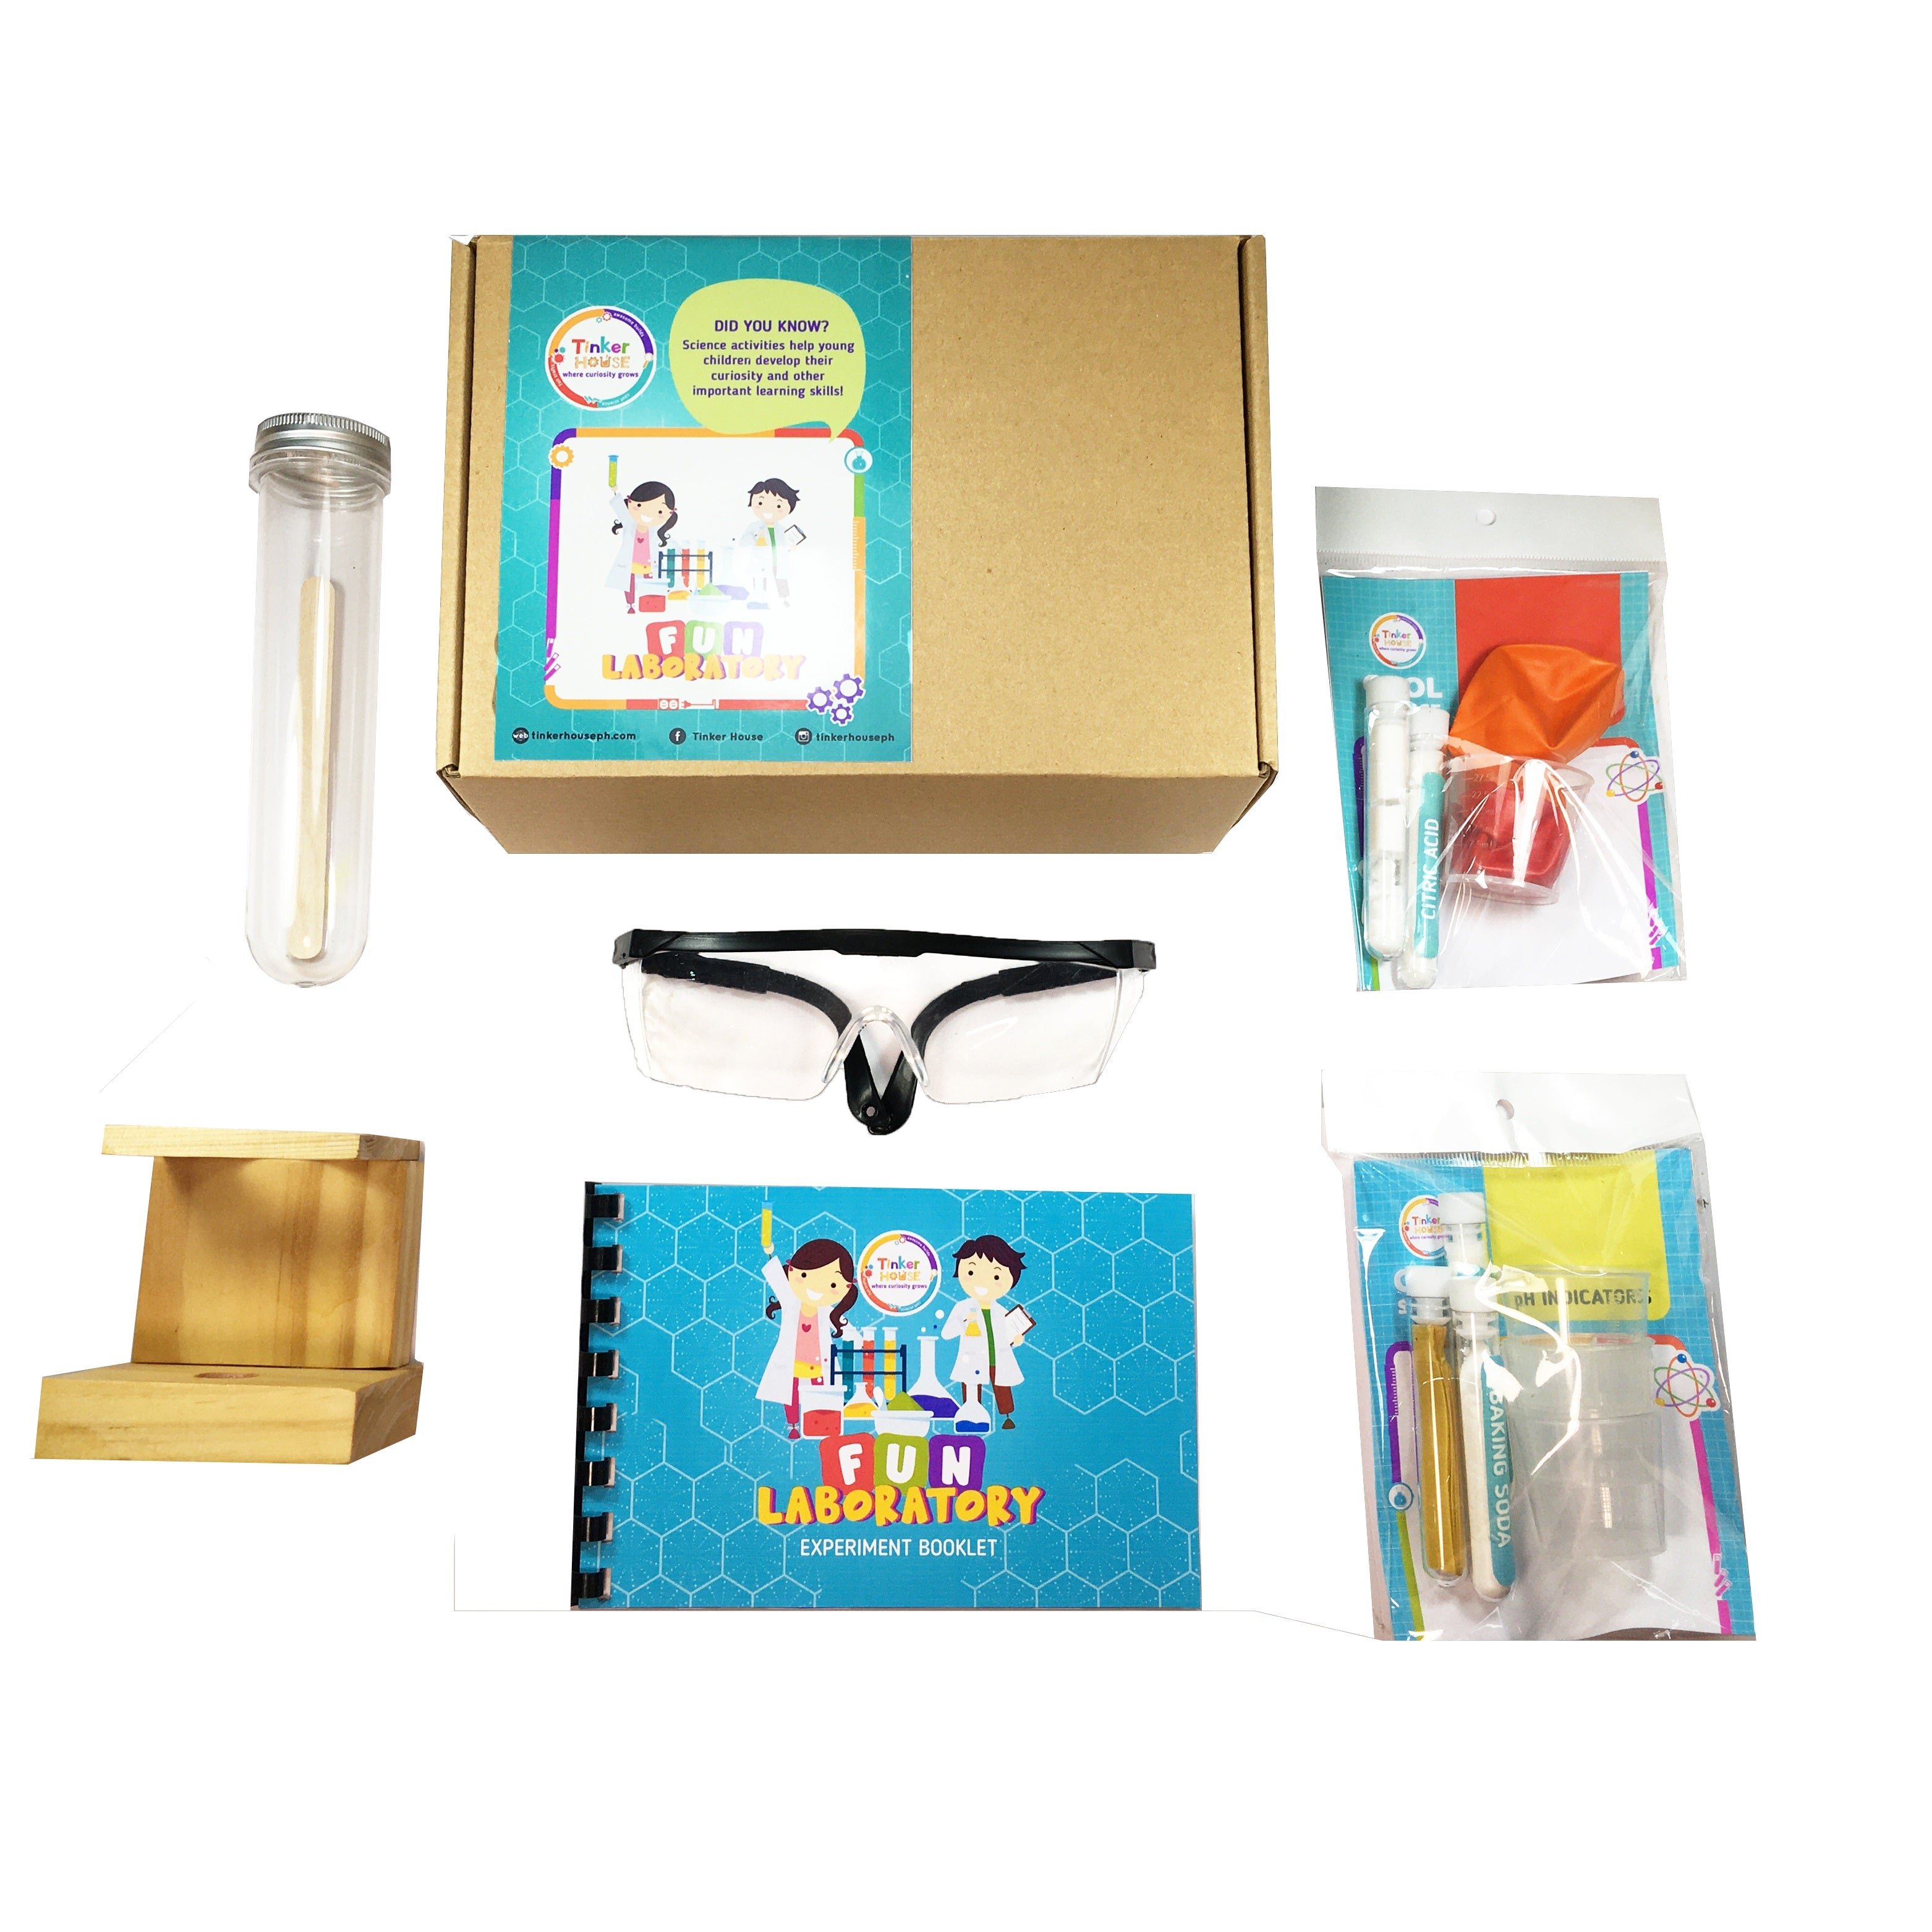 Fun Laboratory Kit